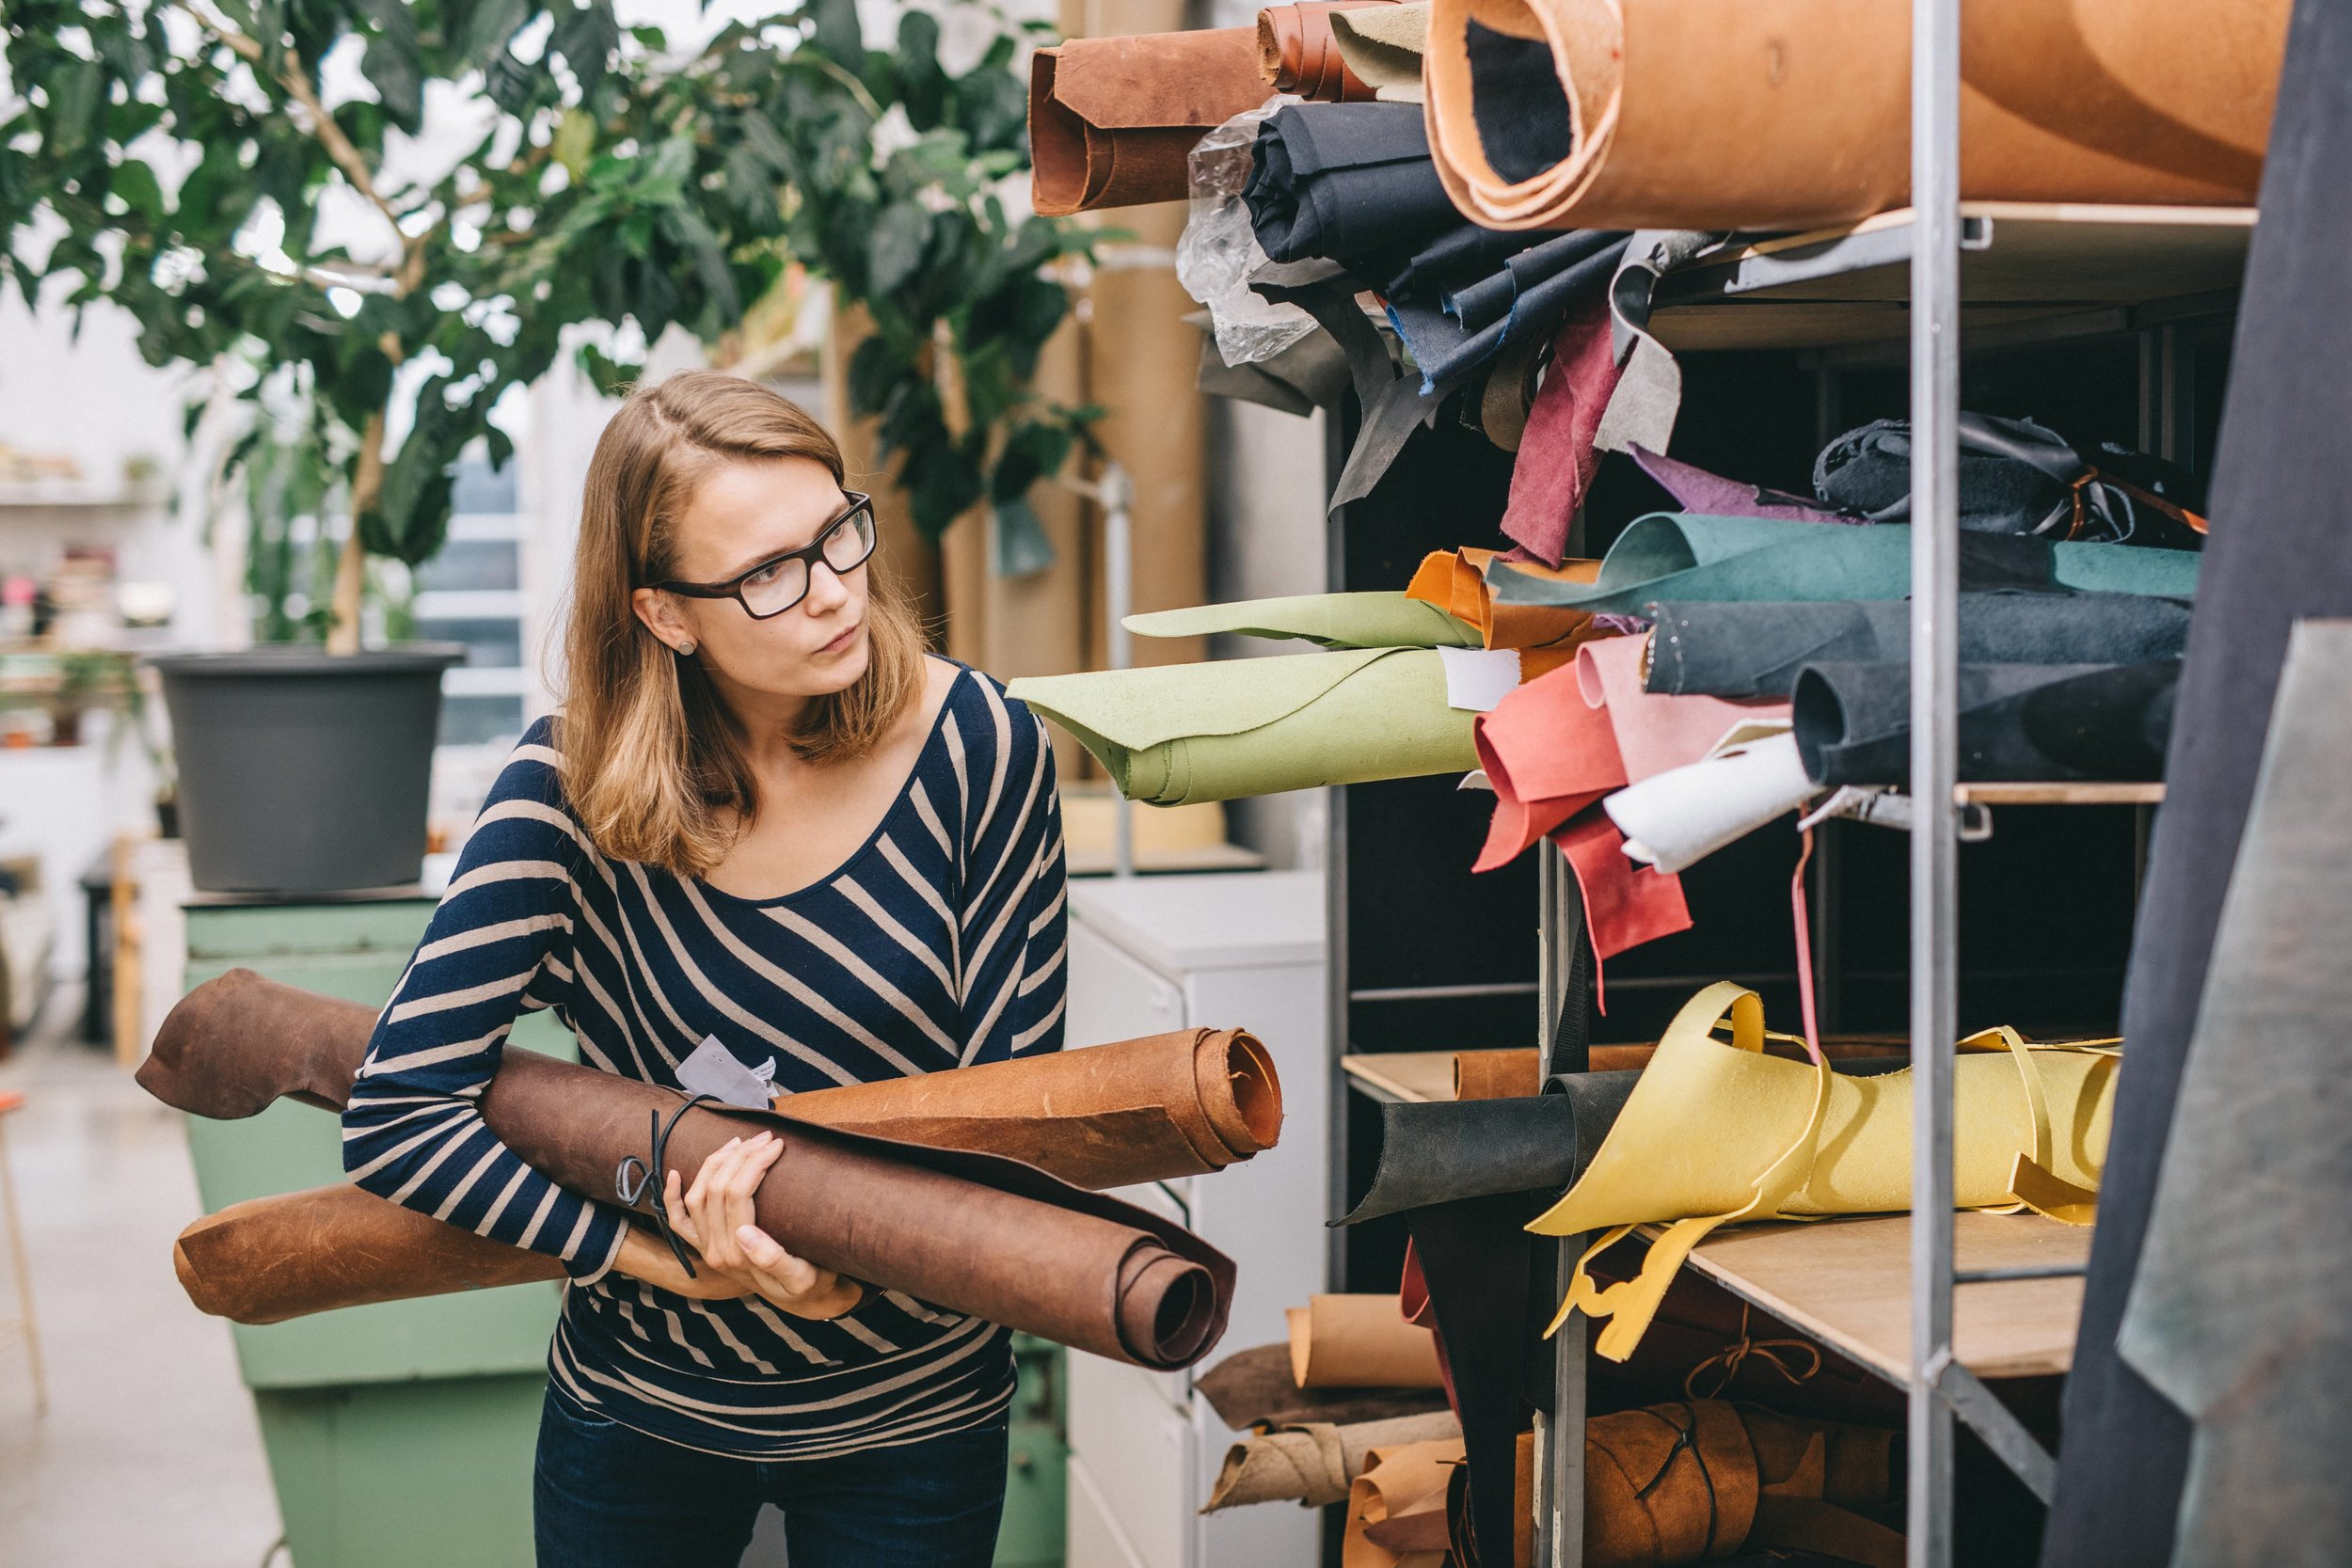 Having a safety net in your inventory management can provide your business with a much-needed safety cushion. You never know when the chain will crack or demand explodes, so it's important to be prepared.